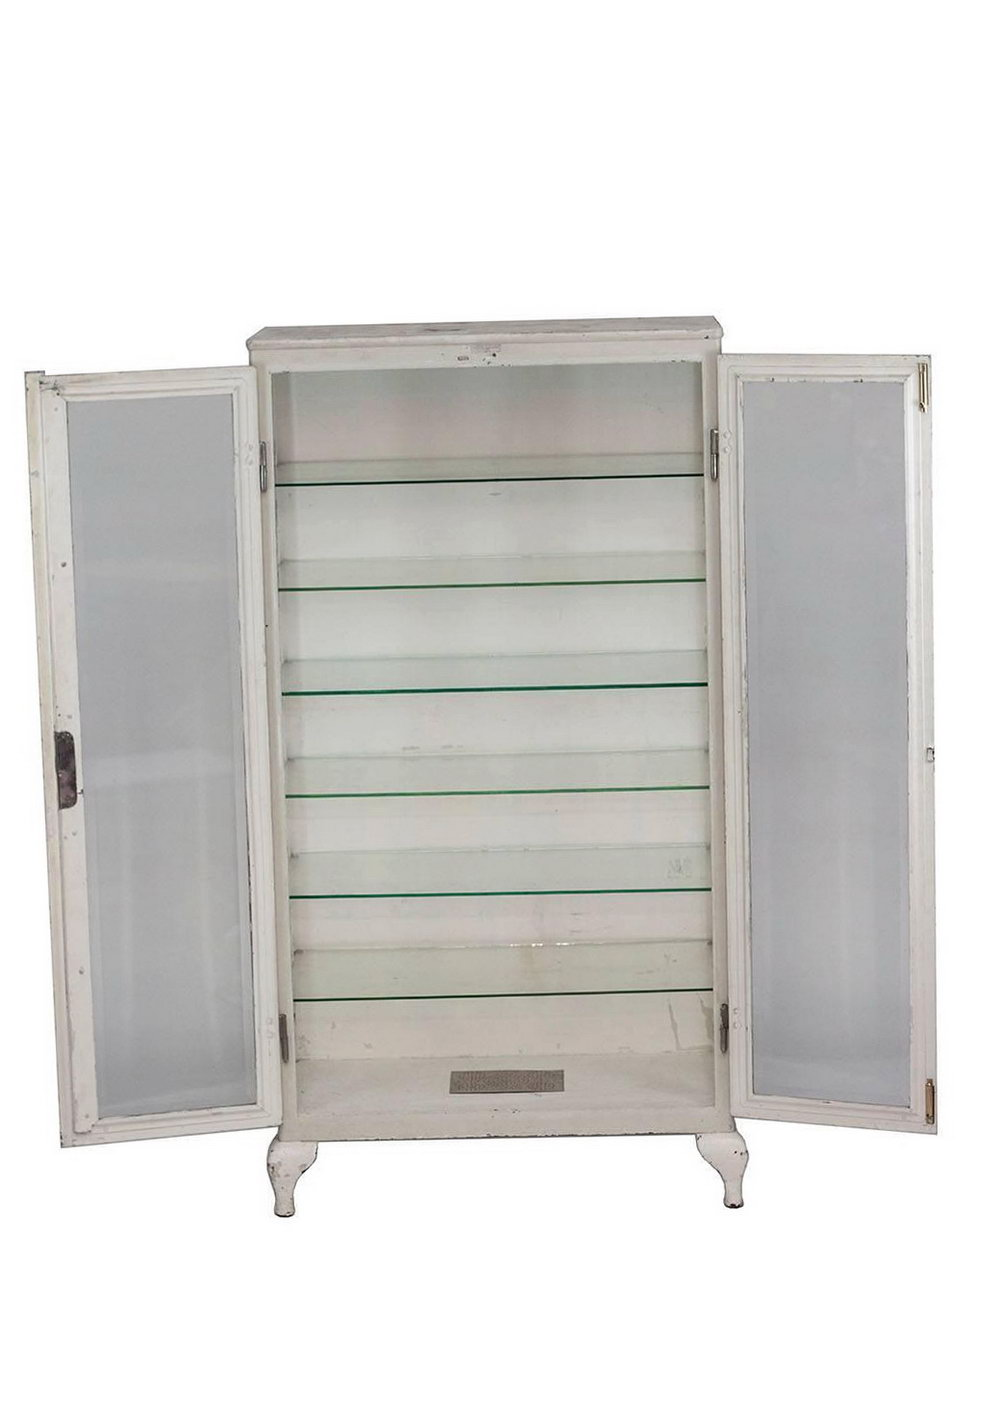 Industrial Storage Cabinets With Doors